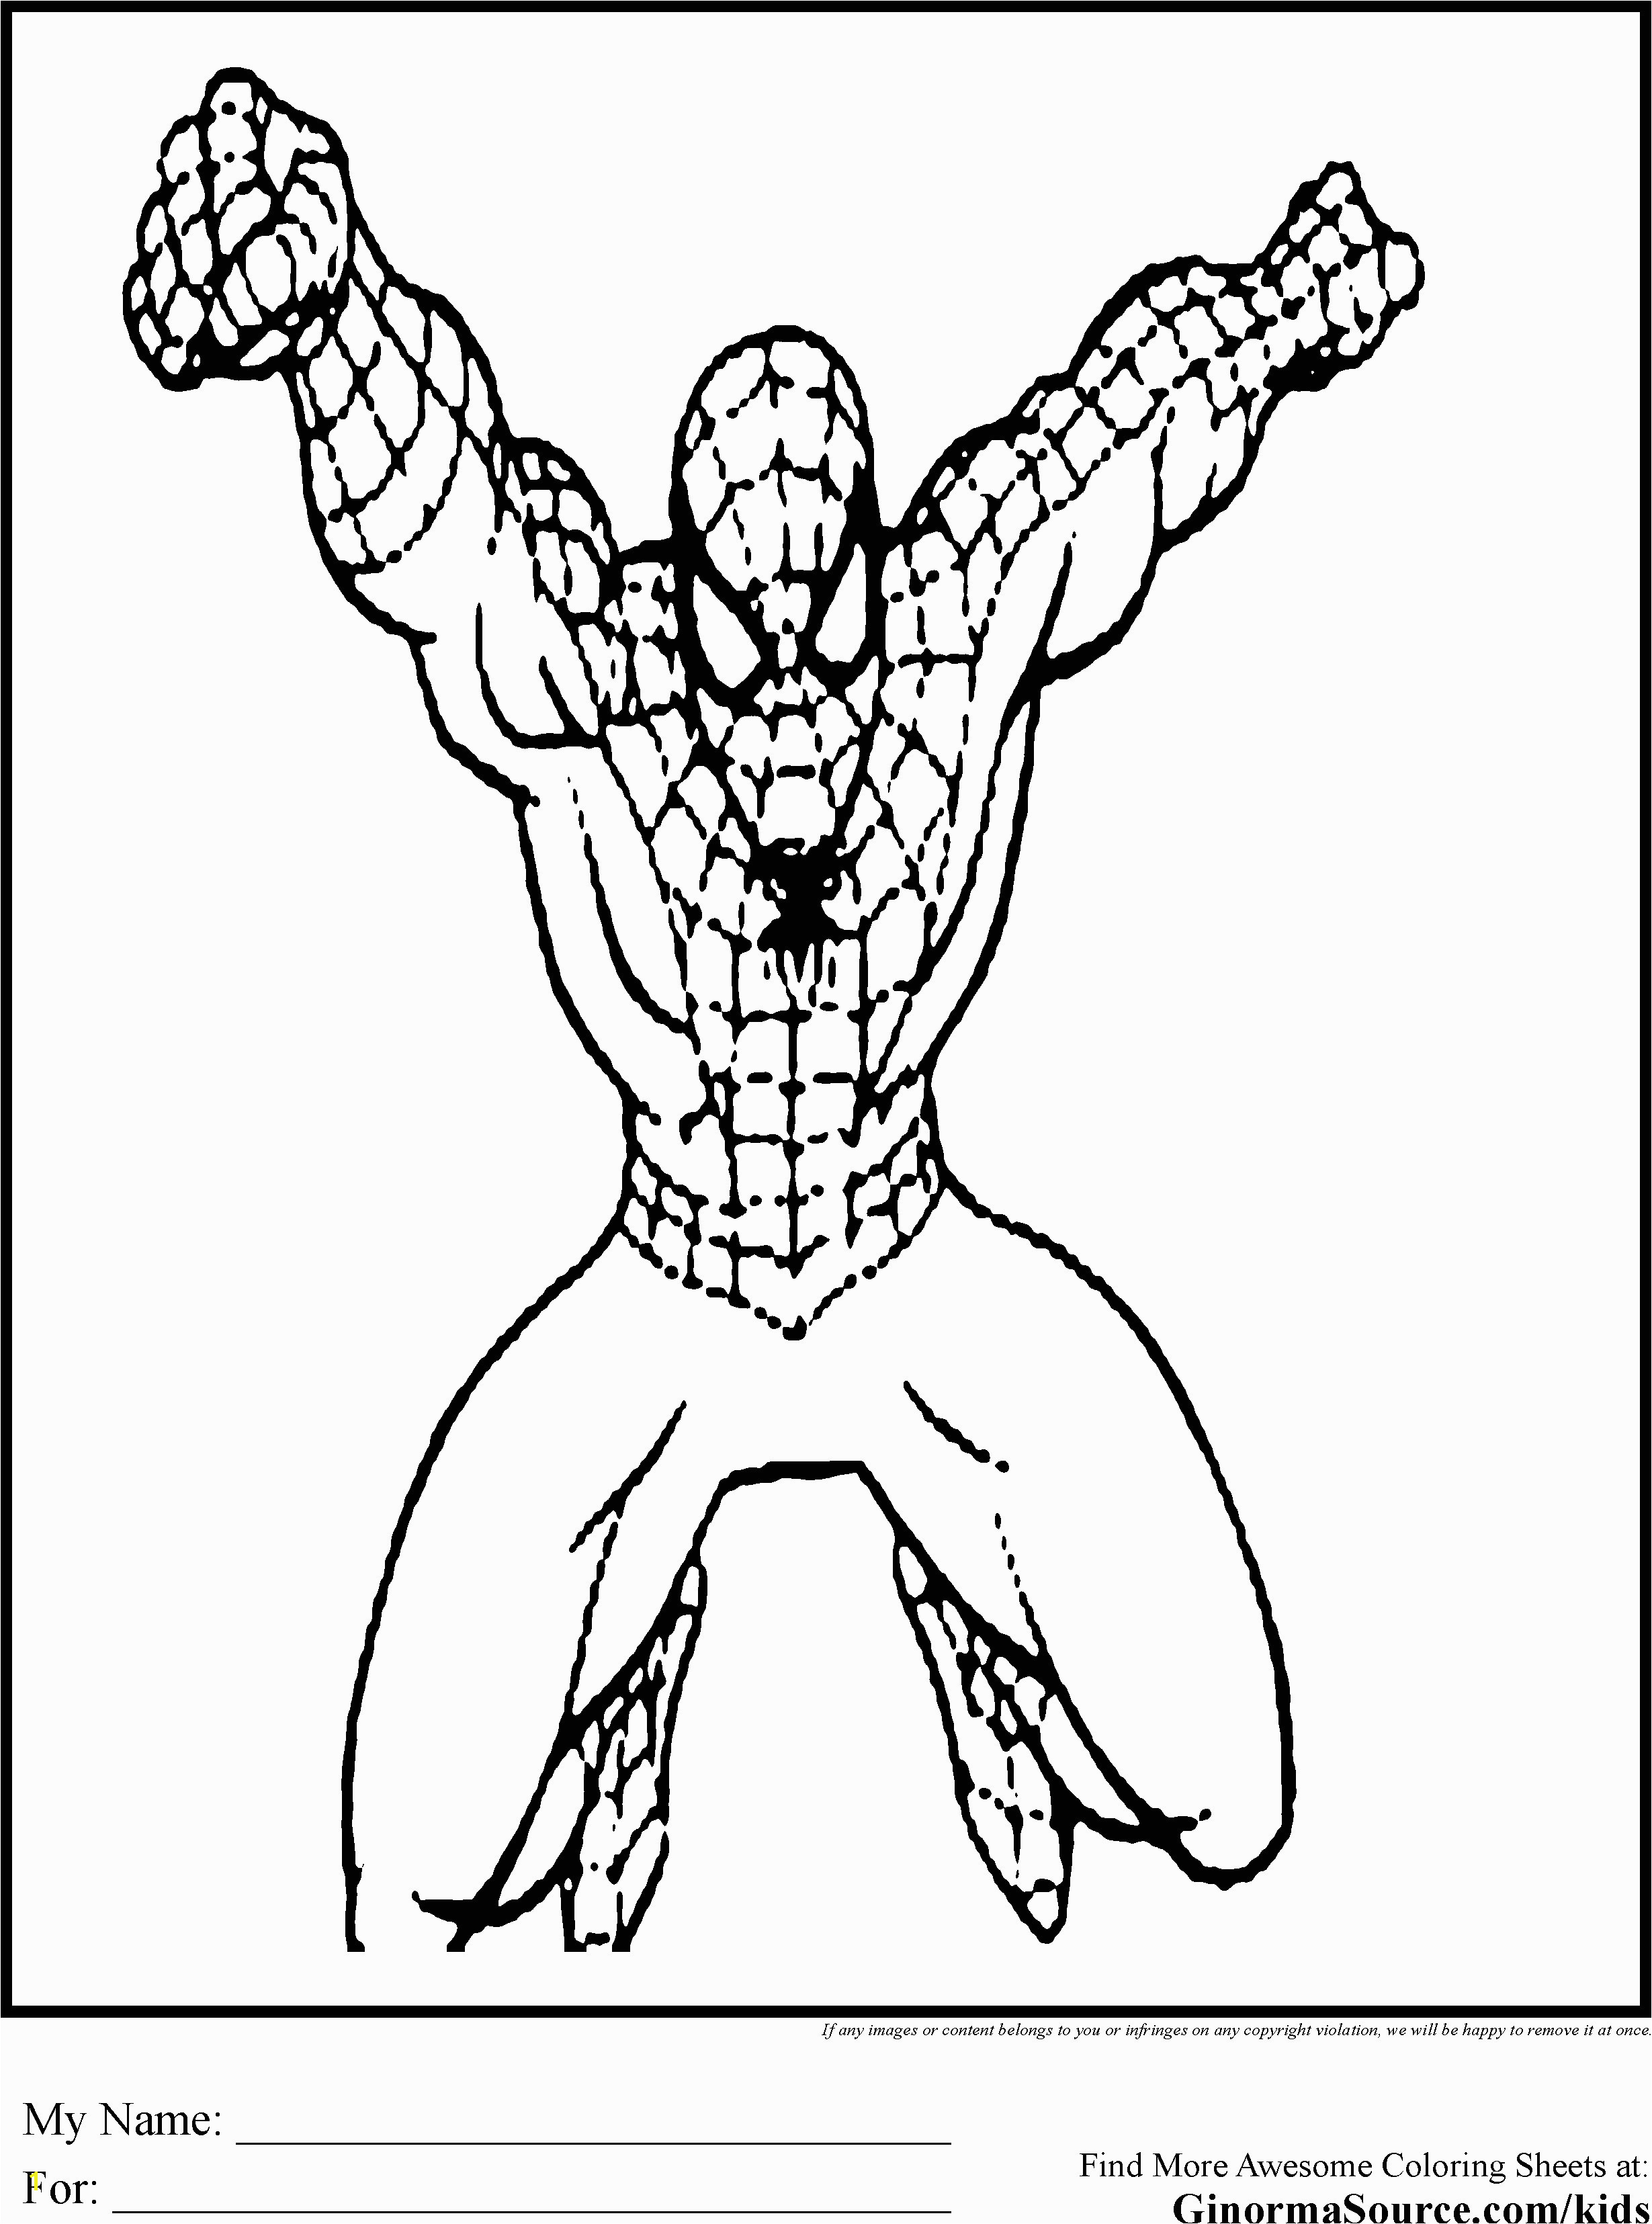 Printable Spiderman Coloring Pages Awesome Spiderman Coloring Sheets Fresh Spiderman Coloring Pages Fresh 0 0d